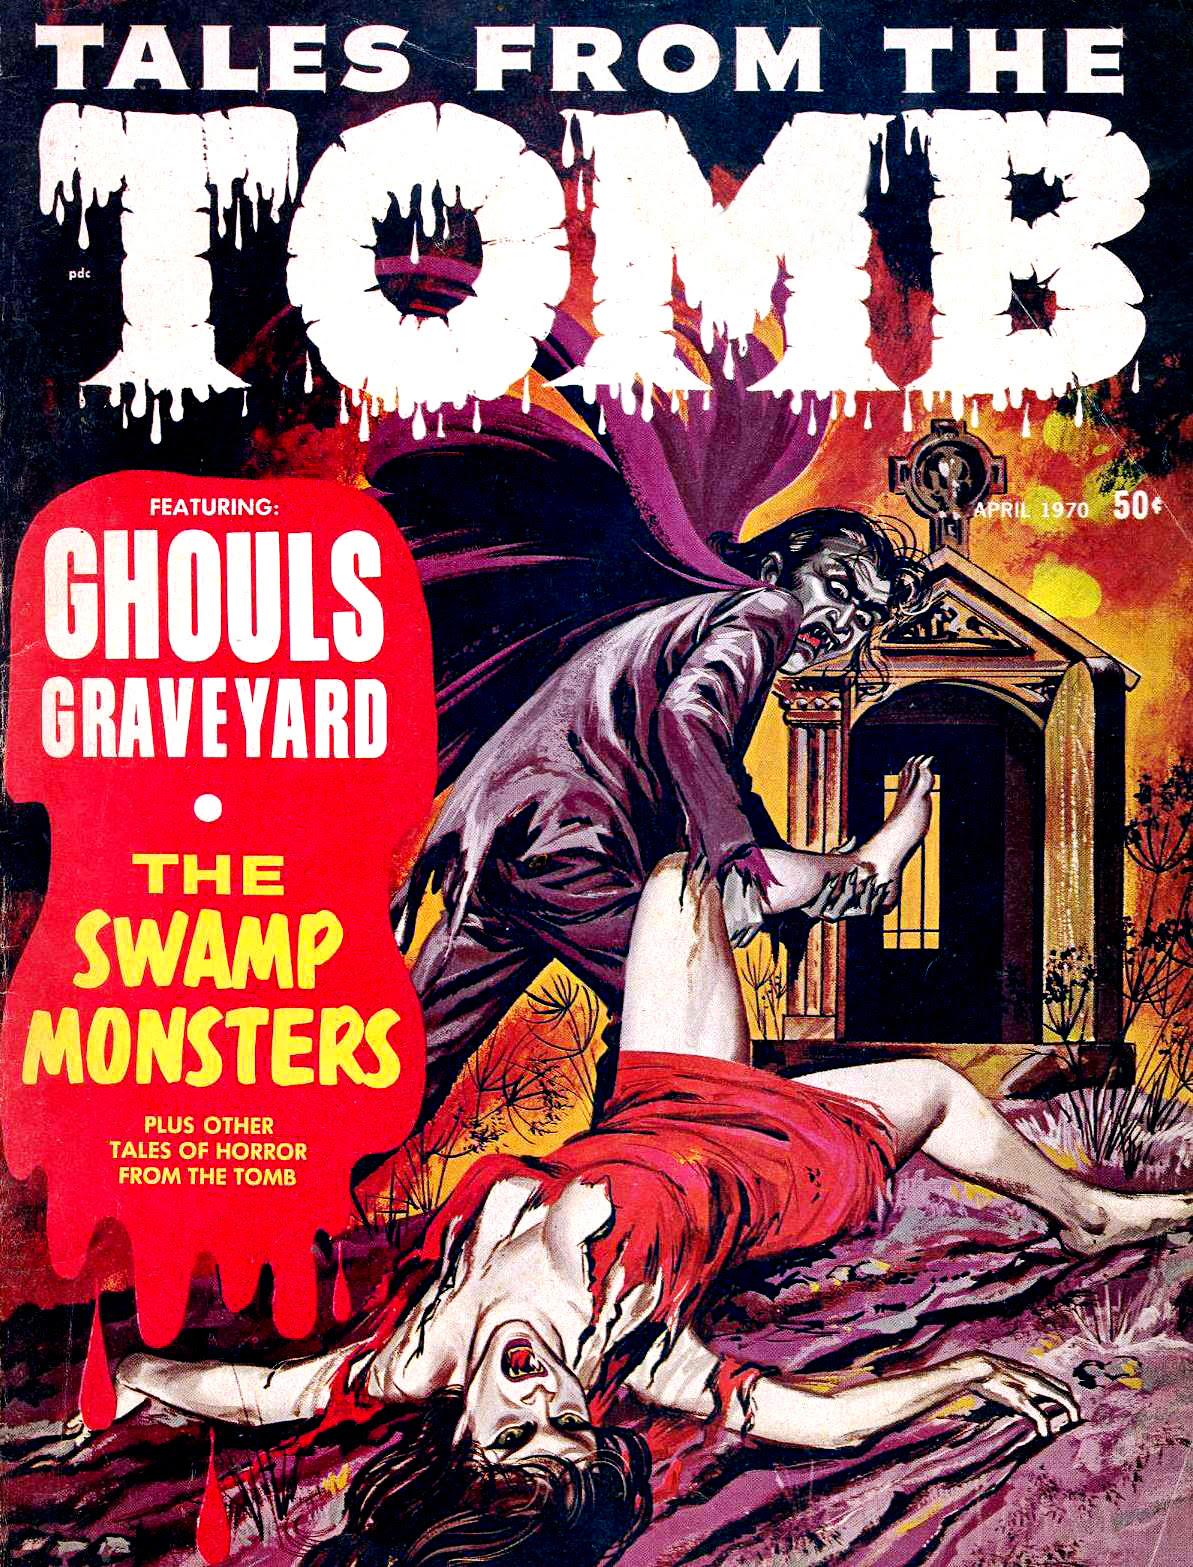 Tales from the Tomb - Vol. 2 #2 (Eerie Publications, 1970)